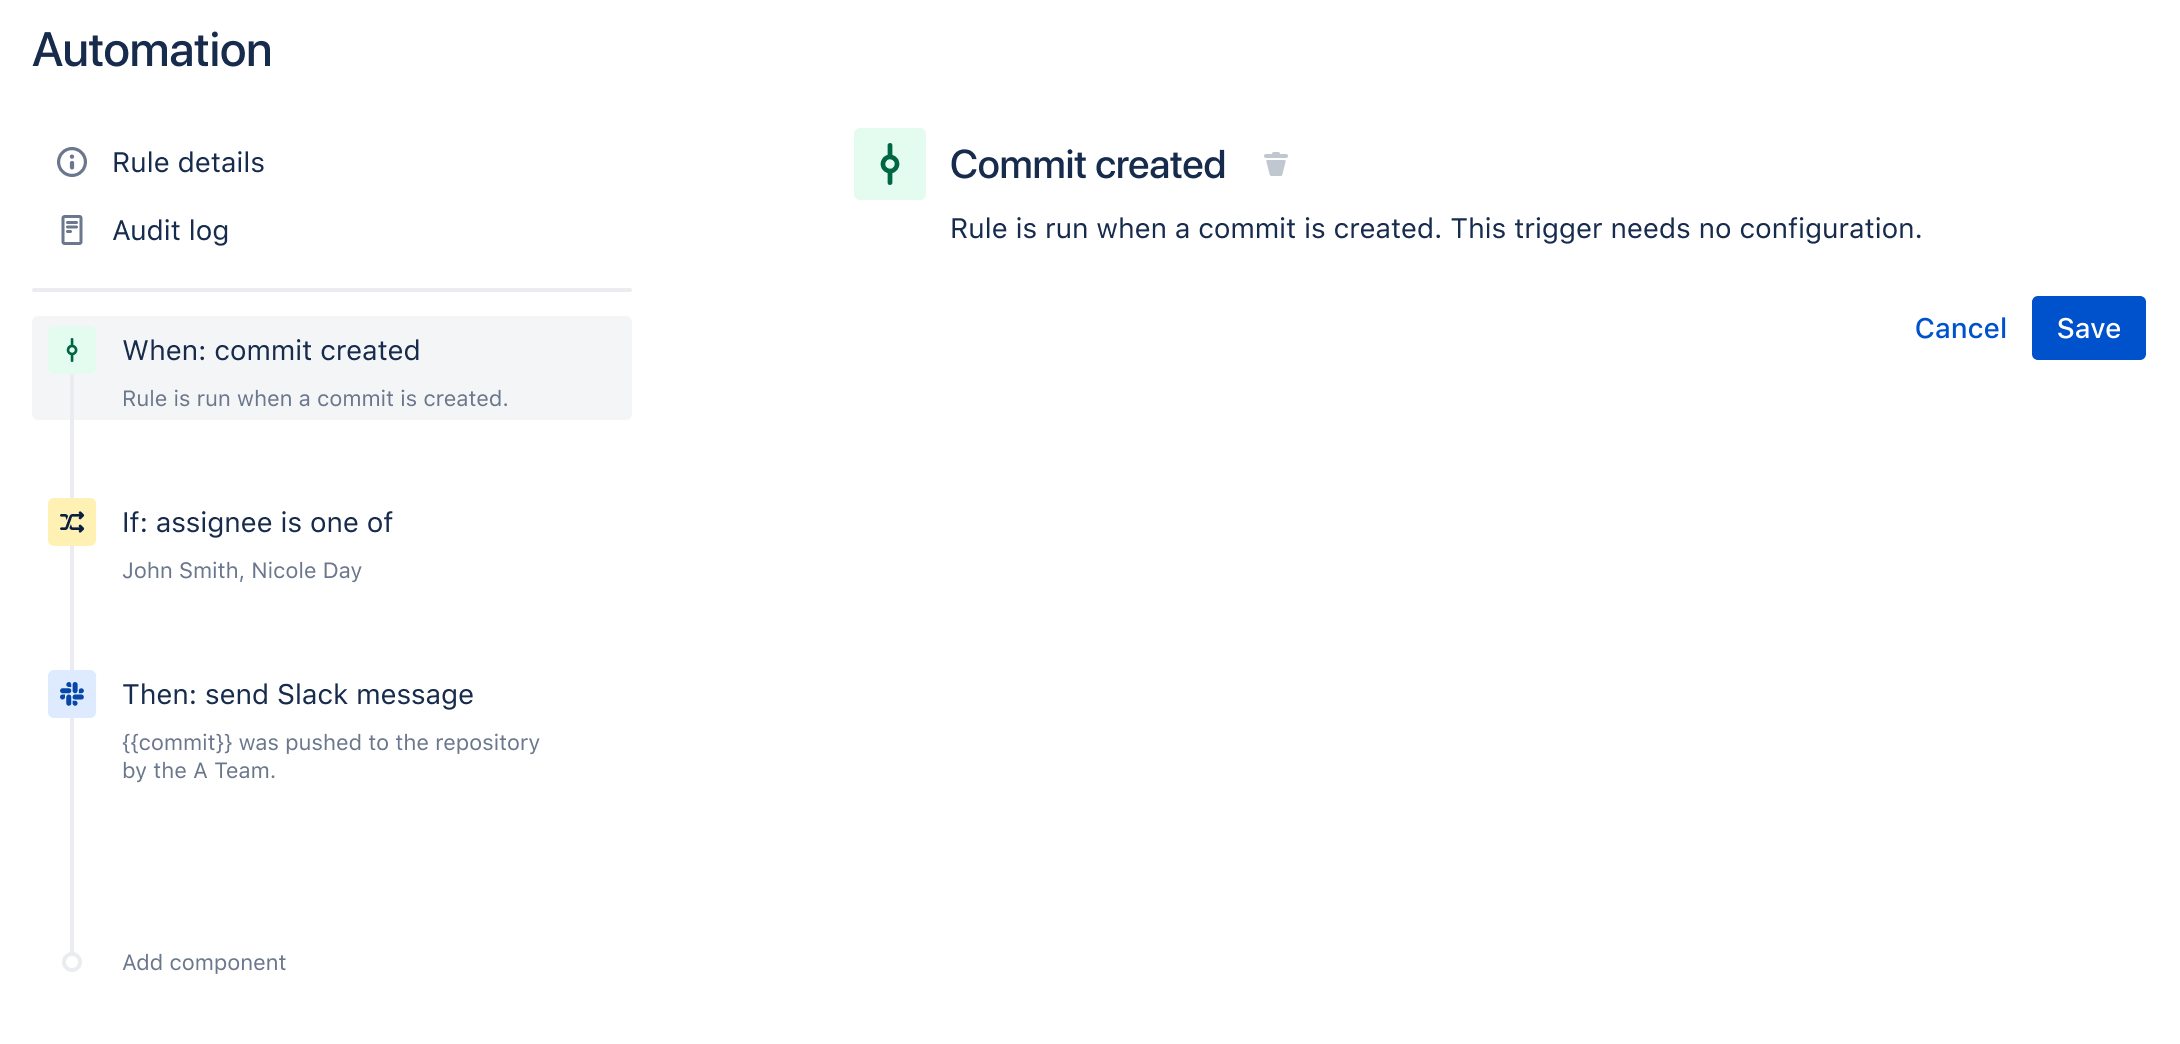 <strong>Commit created</strong>(Commit créé)